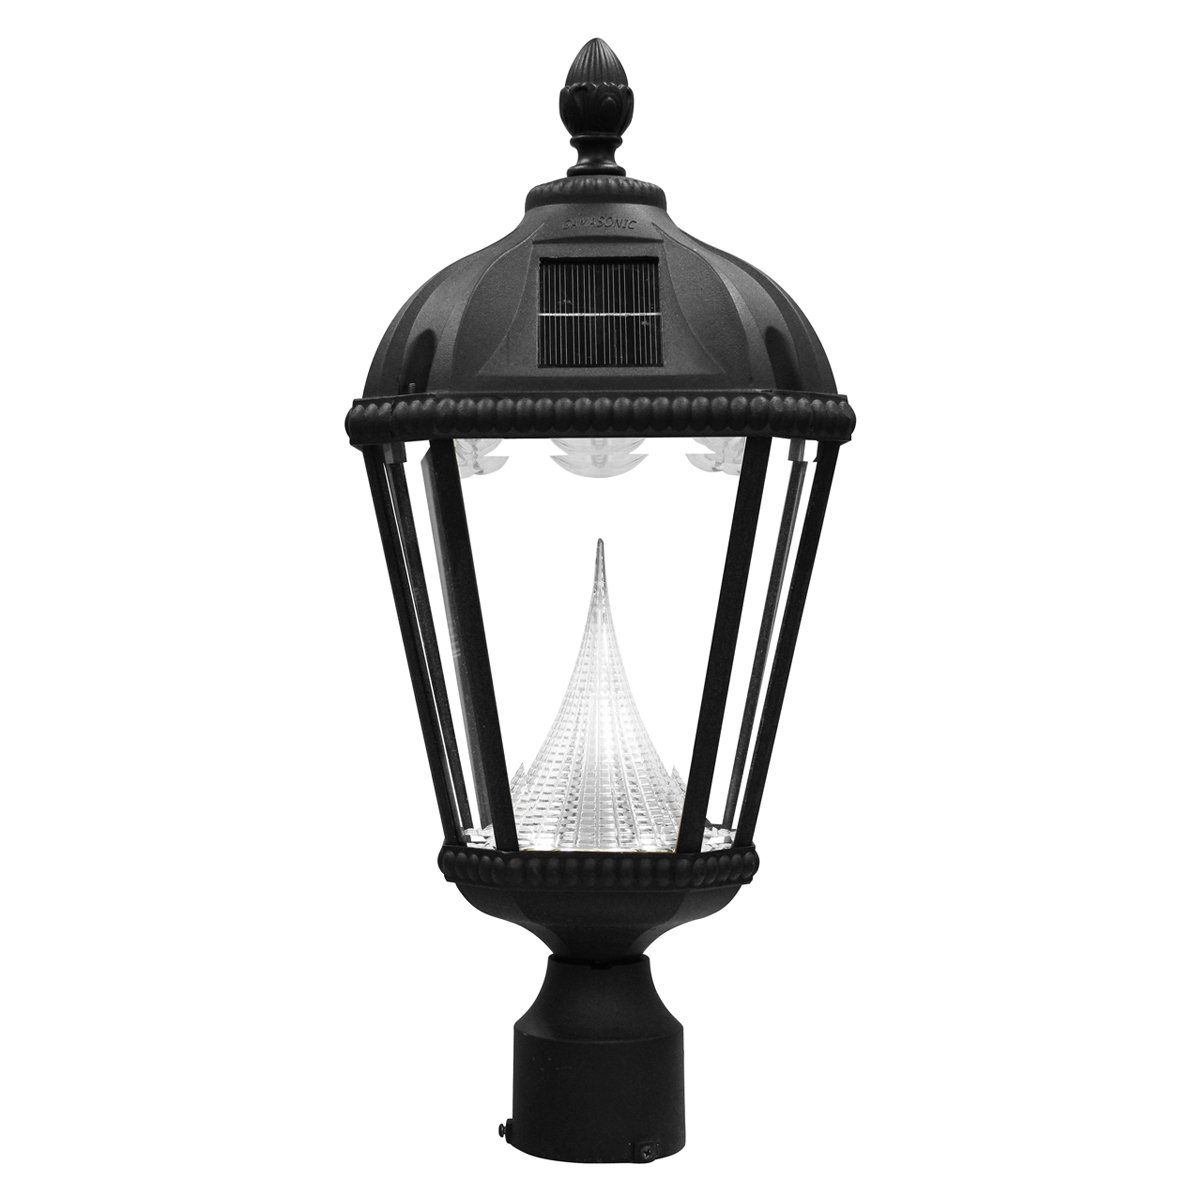 Amazon gama sonic royal solar outdoor led light fixture 3 amazon gama sonic royal solar outdoor led light fixture 3 inch fitter for post mount black finish gs 98f b outdoor post lights garden outdoor aloadofball Image collections